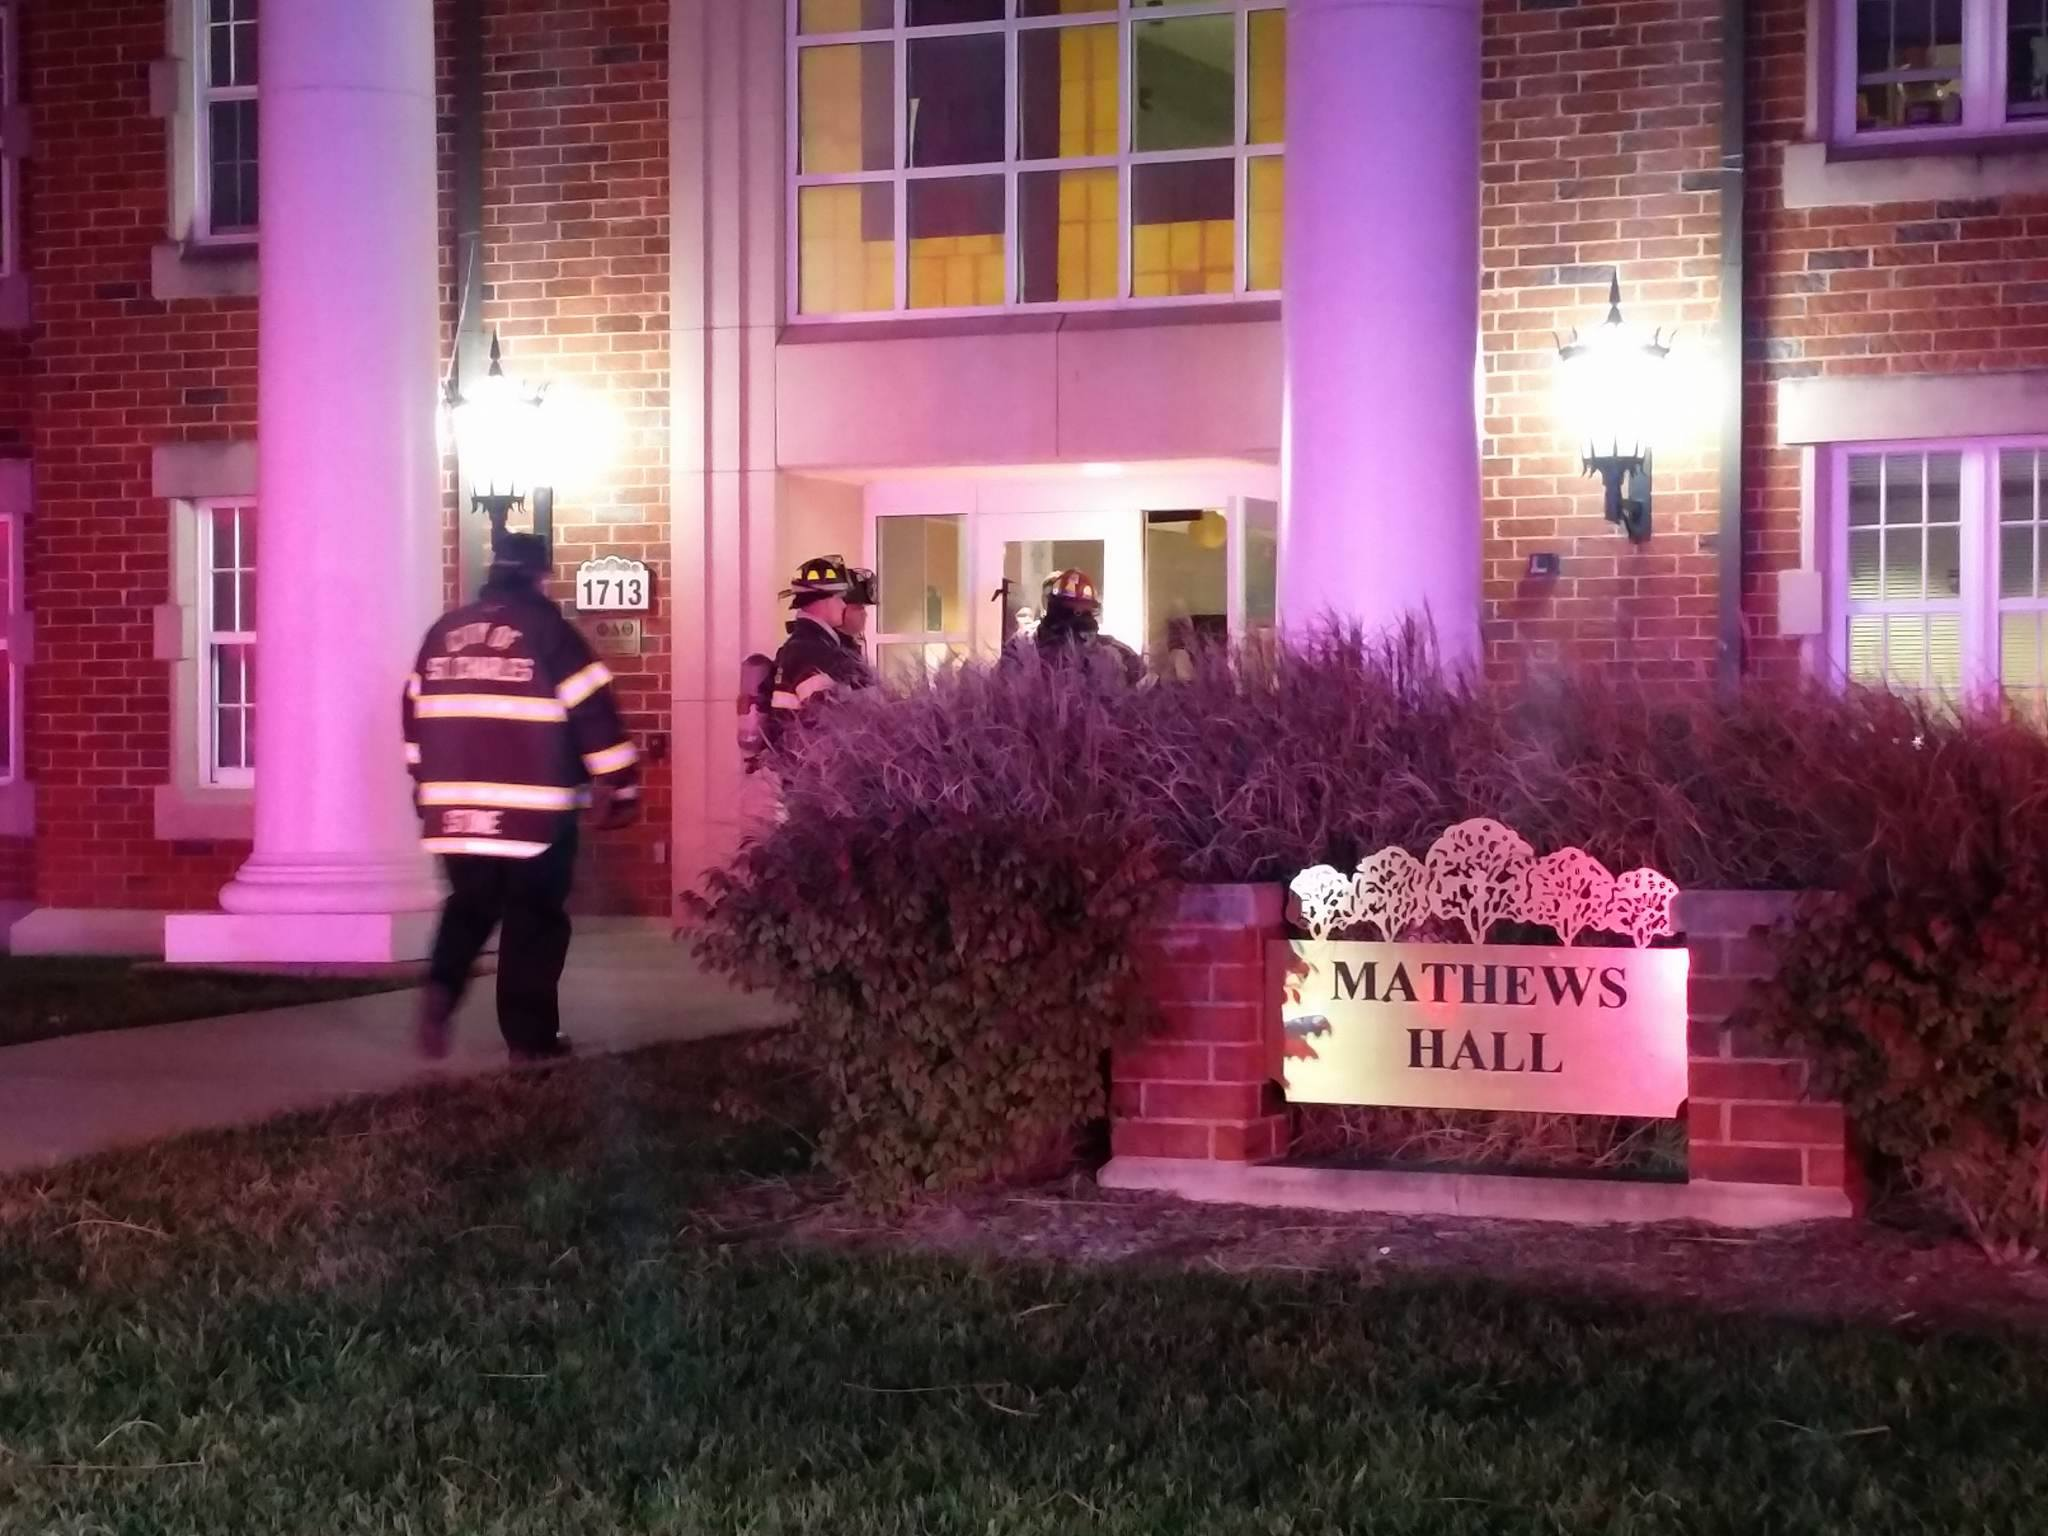 A fire alarm was triggered after someone set off a fire extinguisher in Mathews Hall early Saturday morning. Photo by Moses Milan